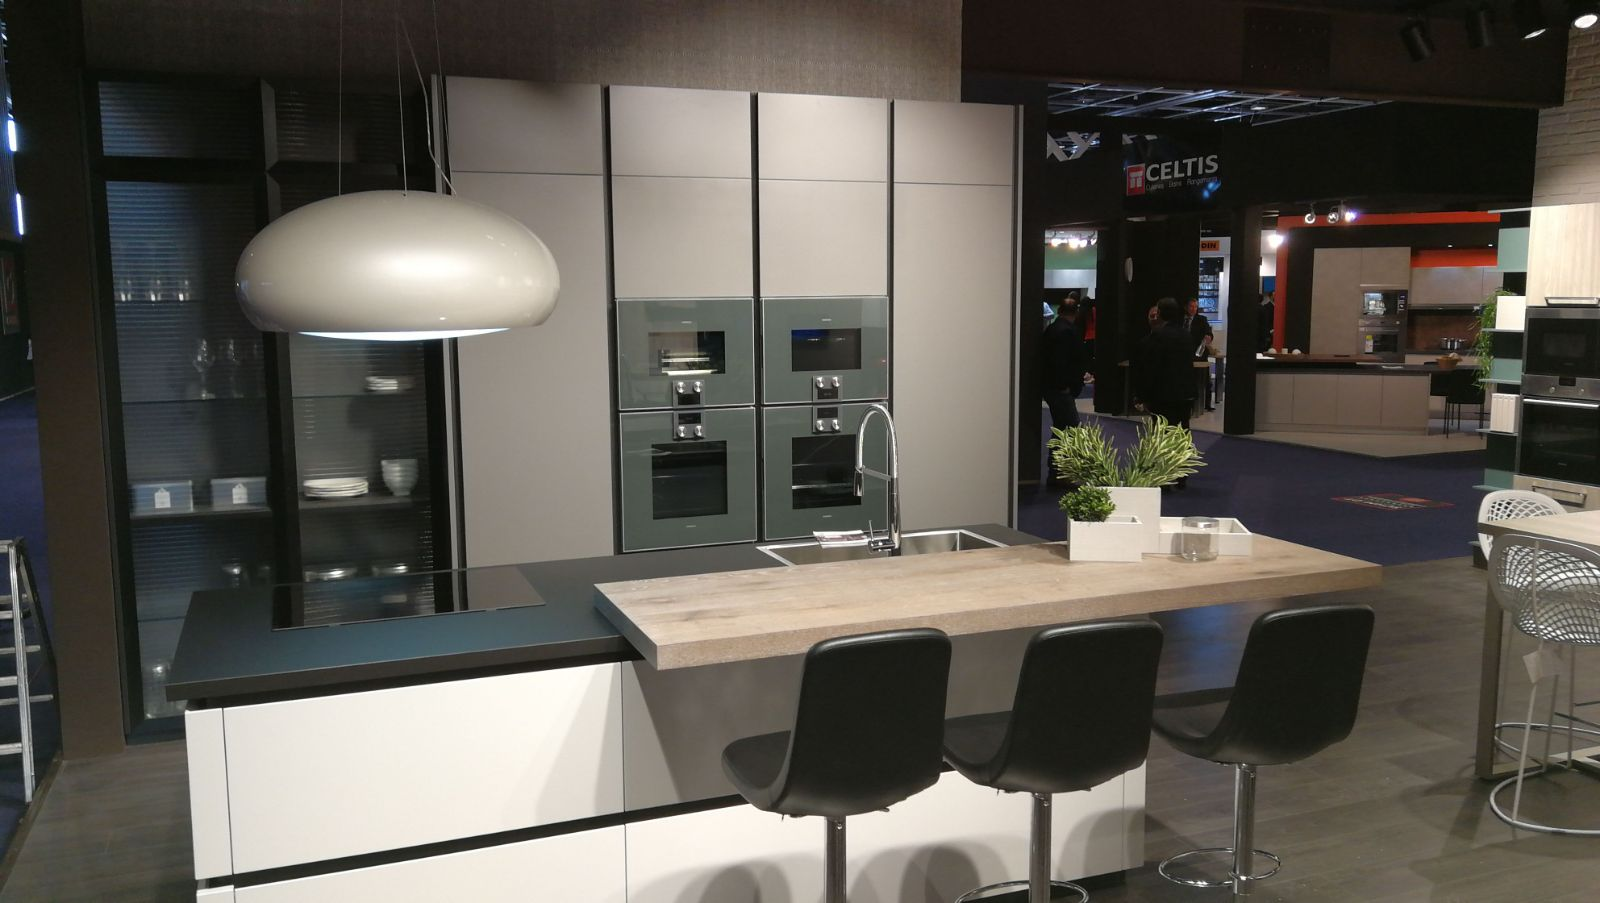 Cucine Lube Design The Design And Quality Of Cucine Lube On Display At The Paris Fair